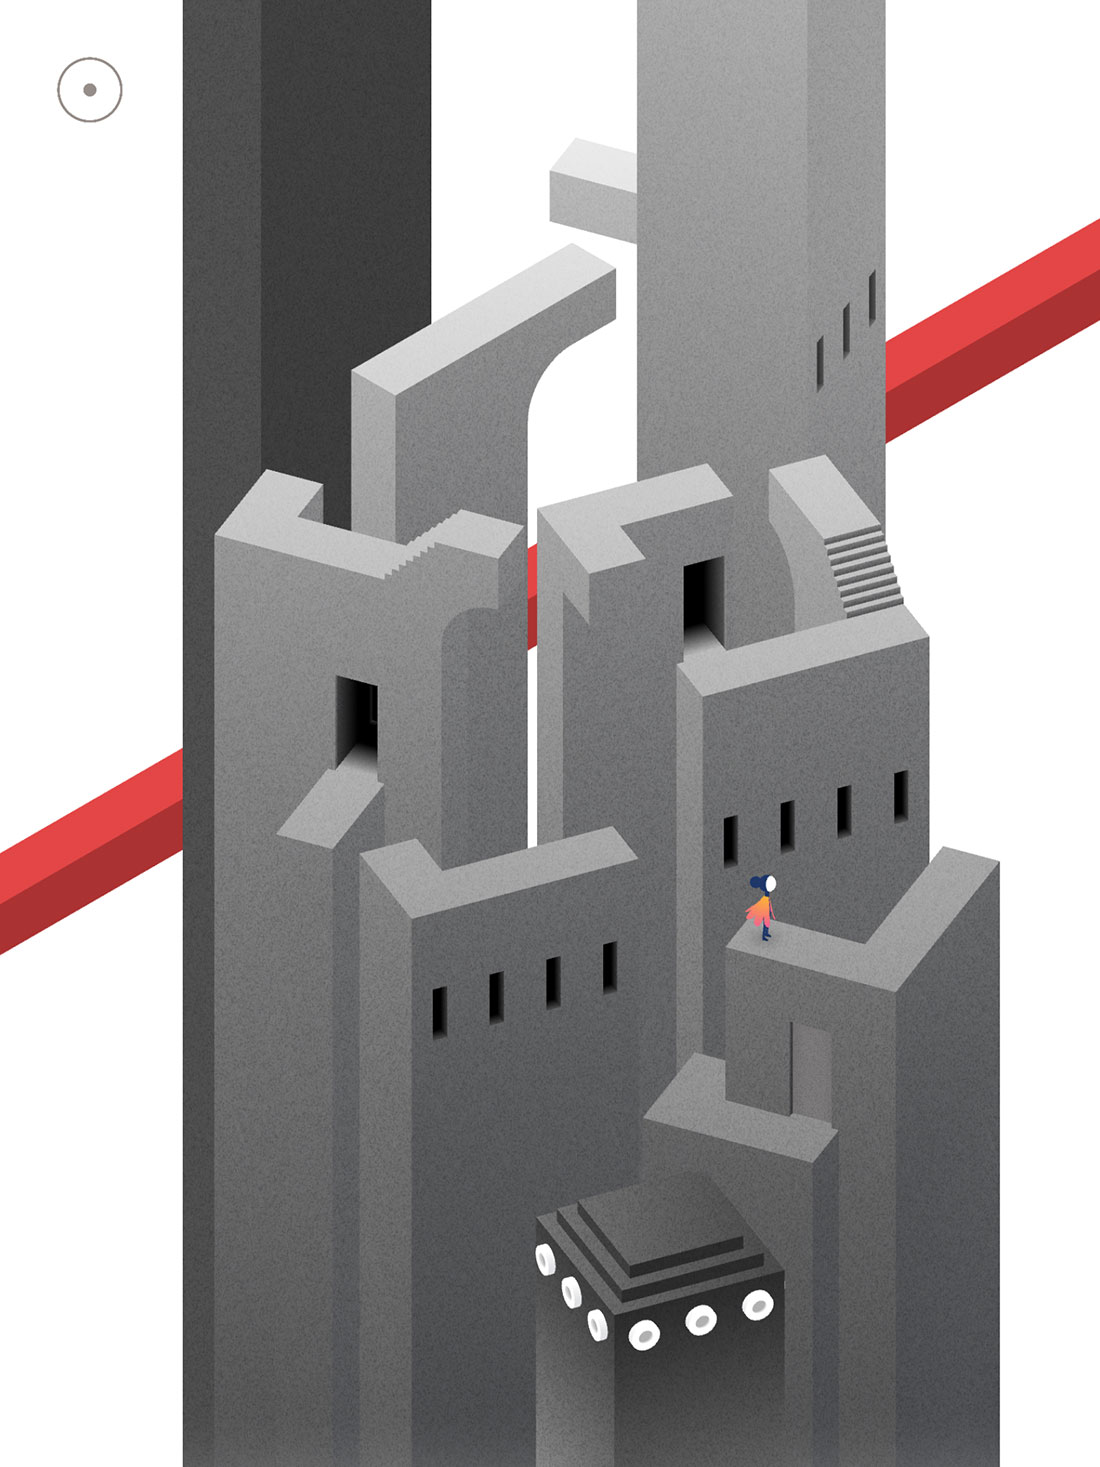 Monument Valley 2 gameplay screenshot showing a princess standing on a rotating tower